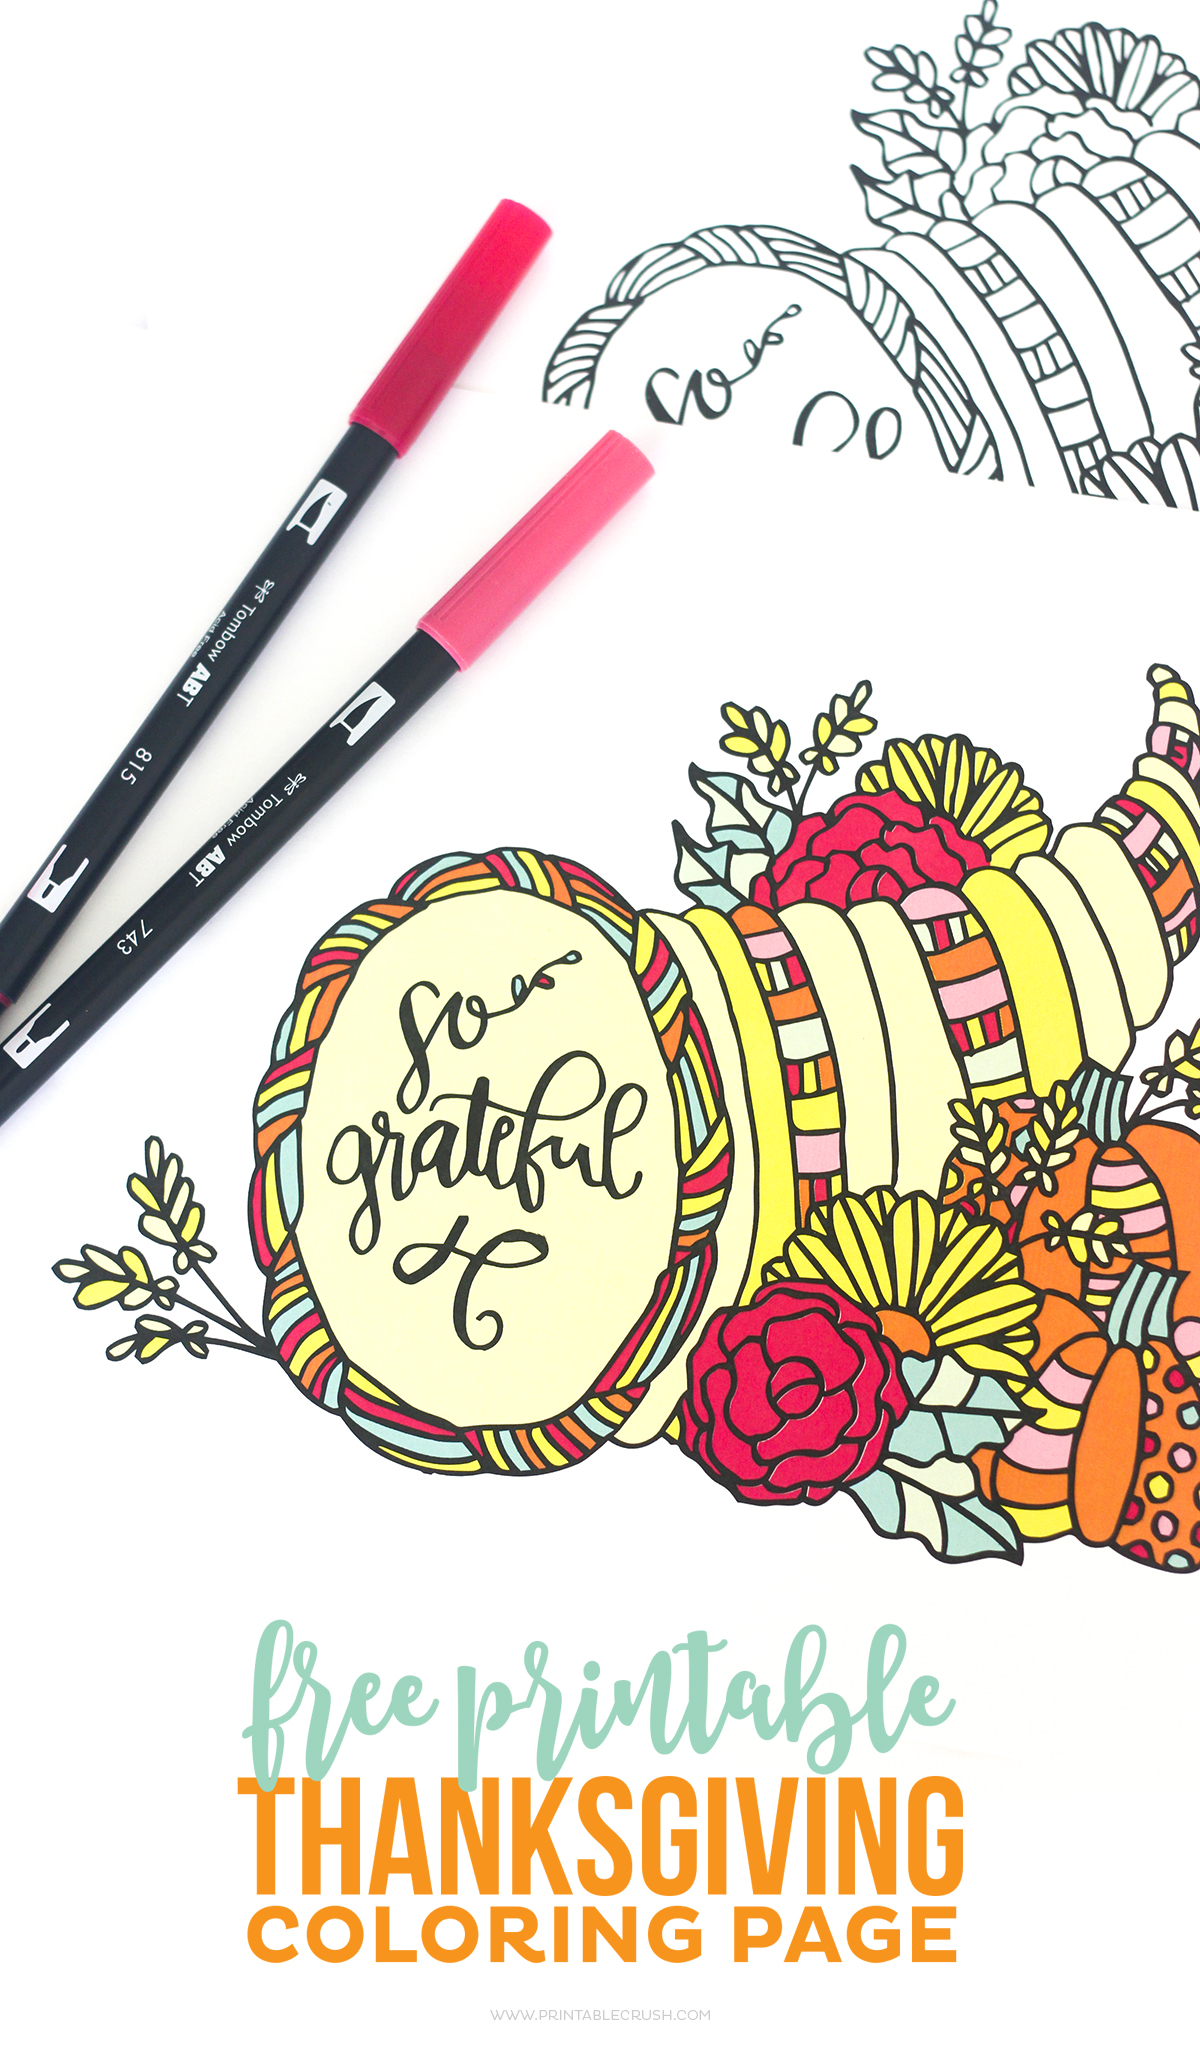 free printable thanksgiving coloring page printable crush